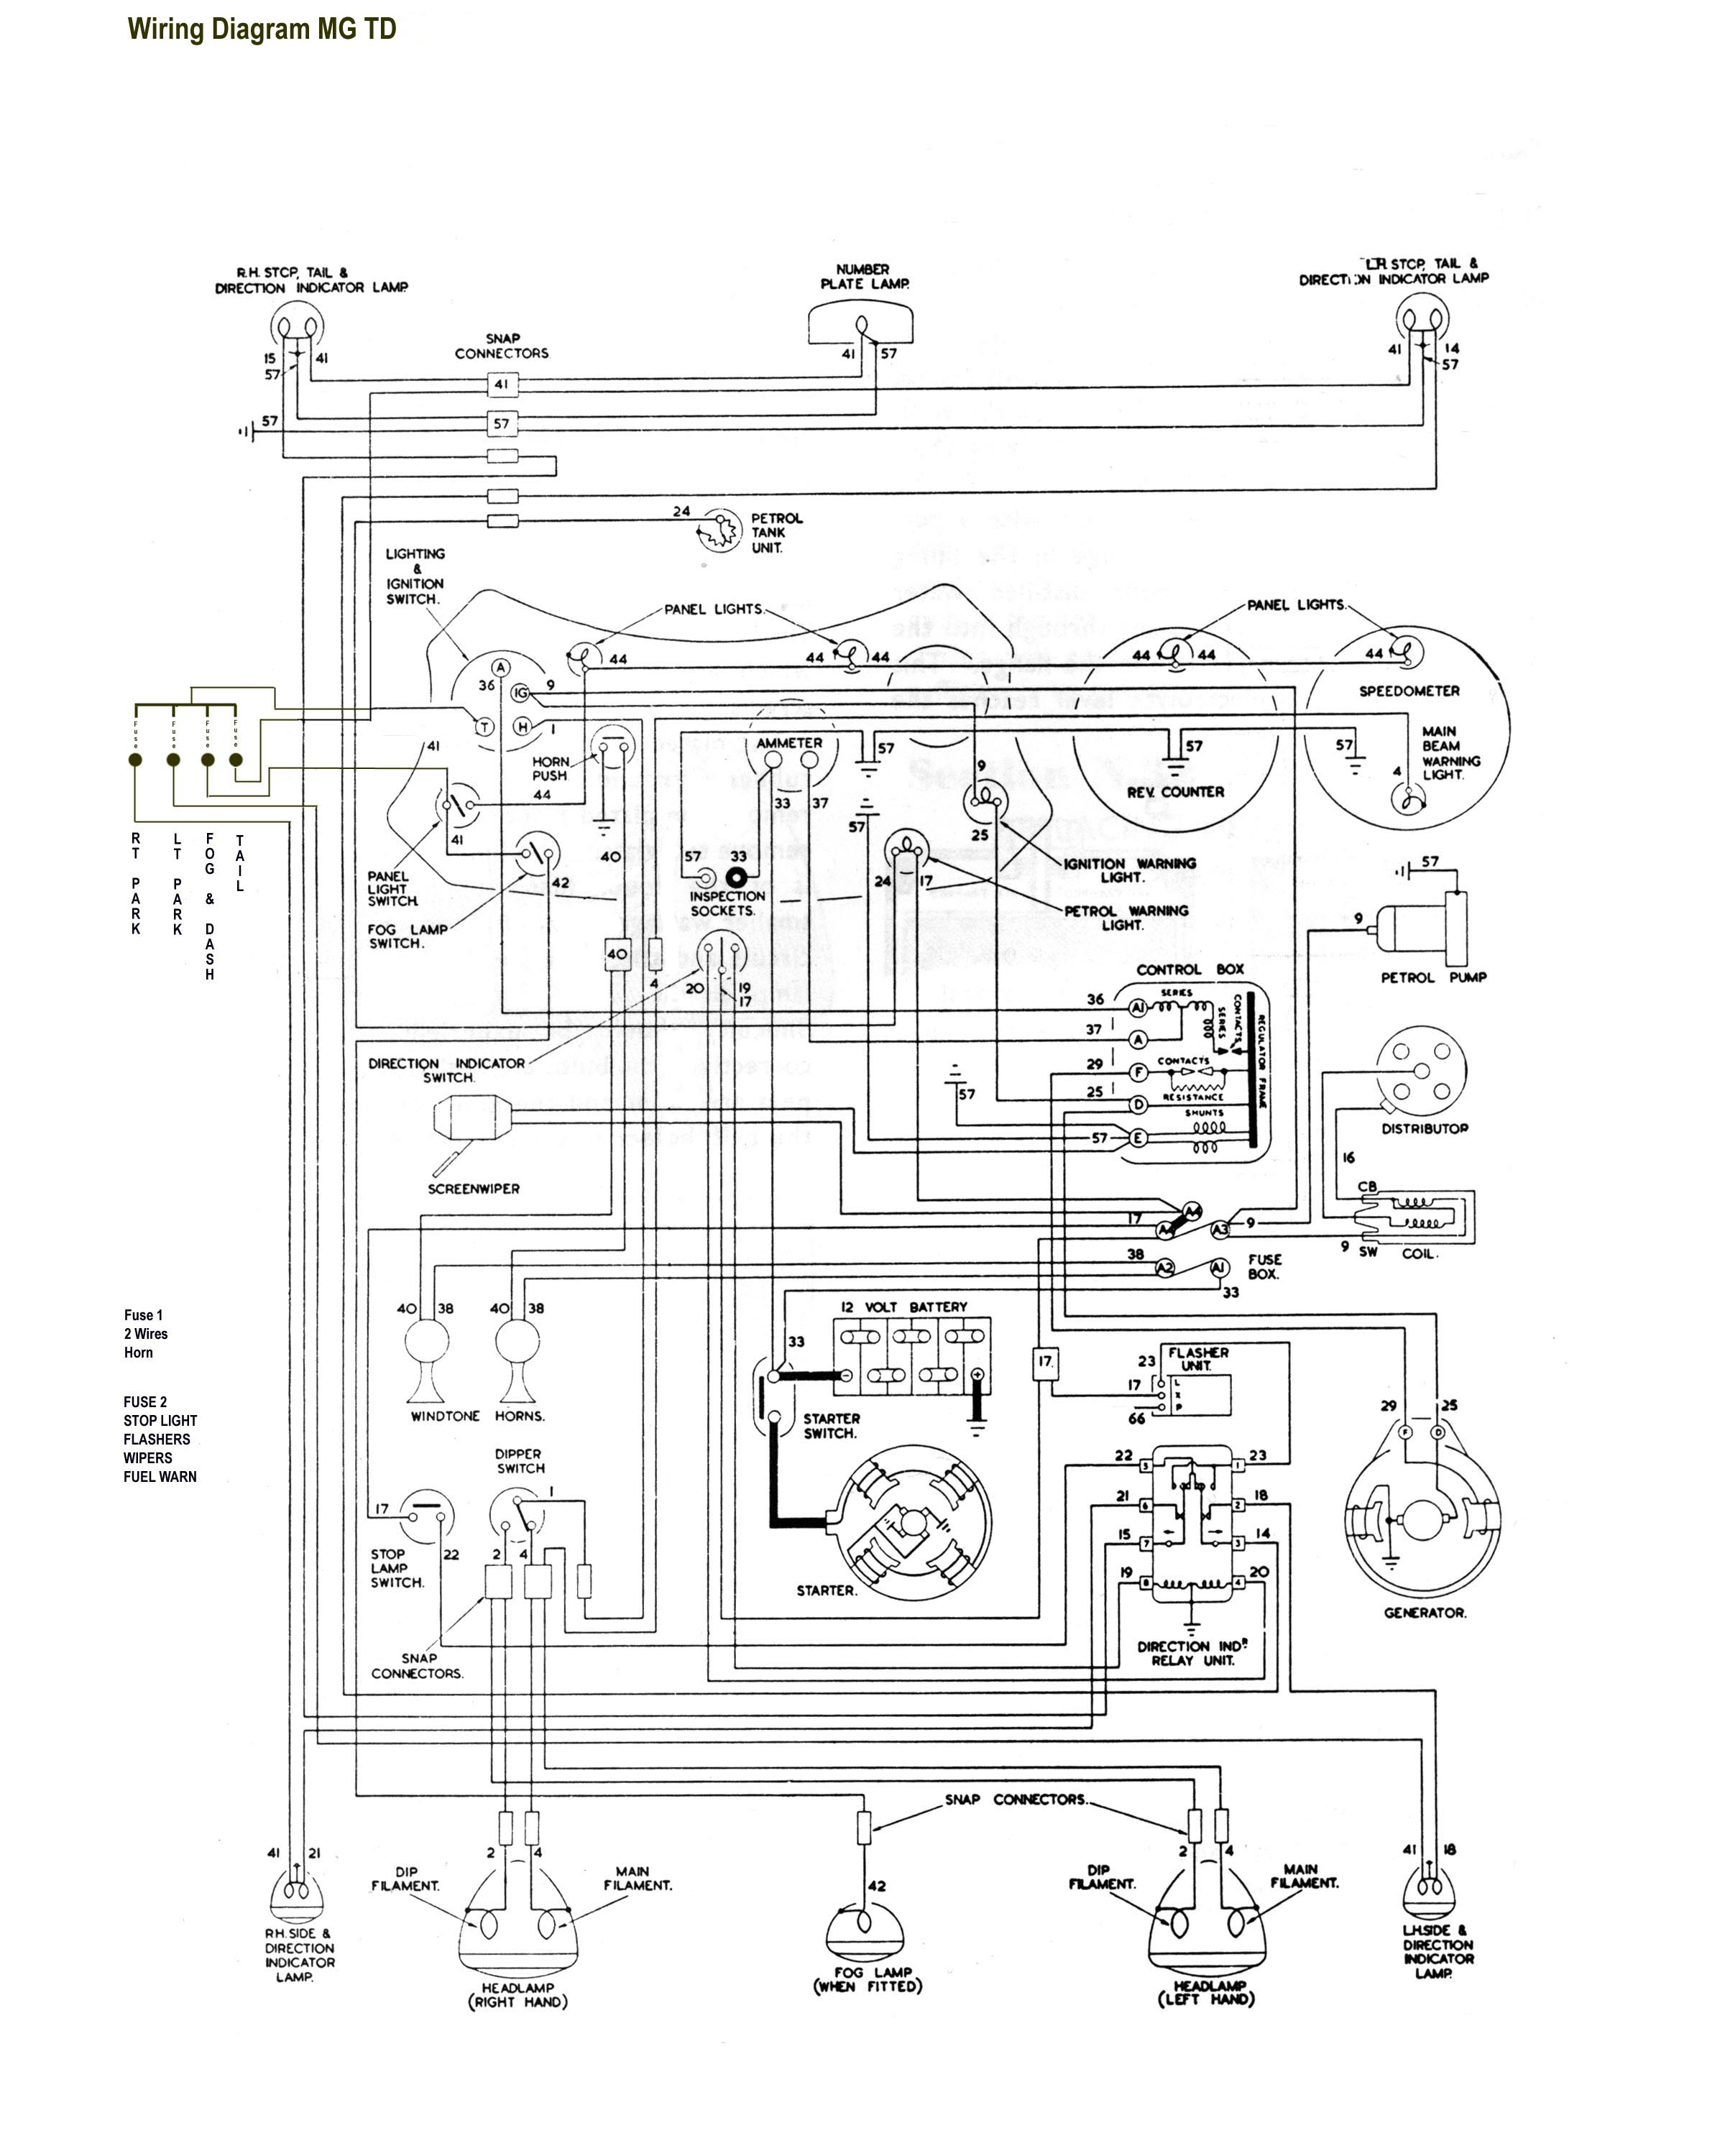 1972 Mgb Wiring Diagram Free Download Schematic 1976 F250 Wiring Diagram Printable 2006cruisers Bmw In E46 Jeanjaures37 Fr